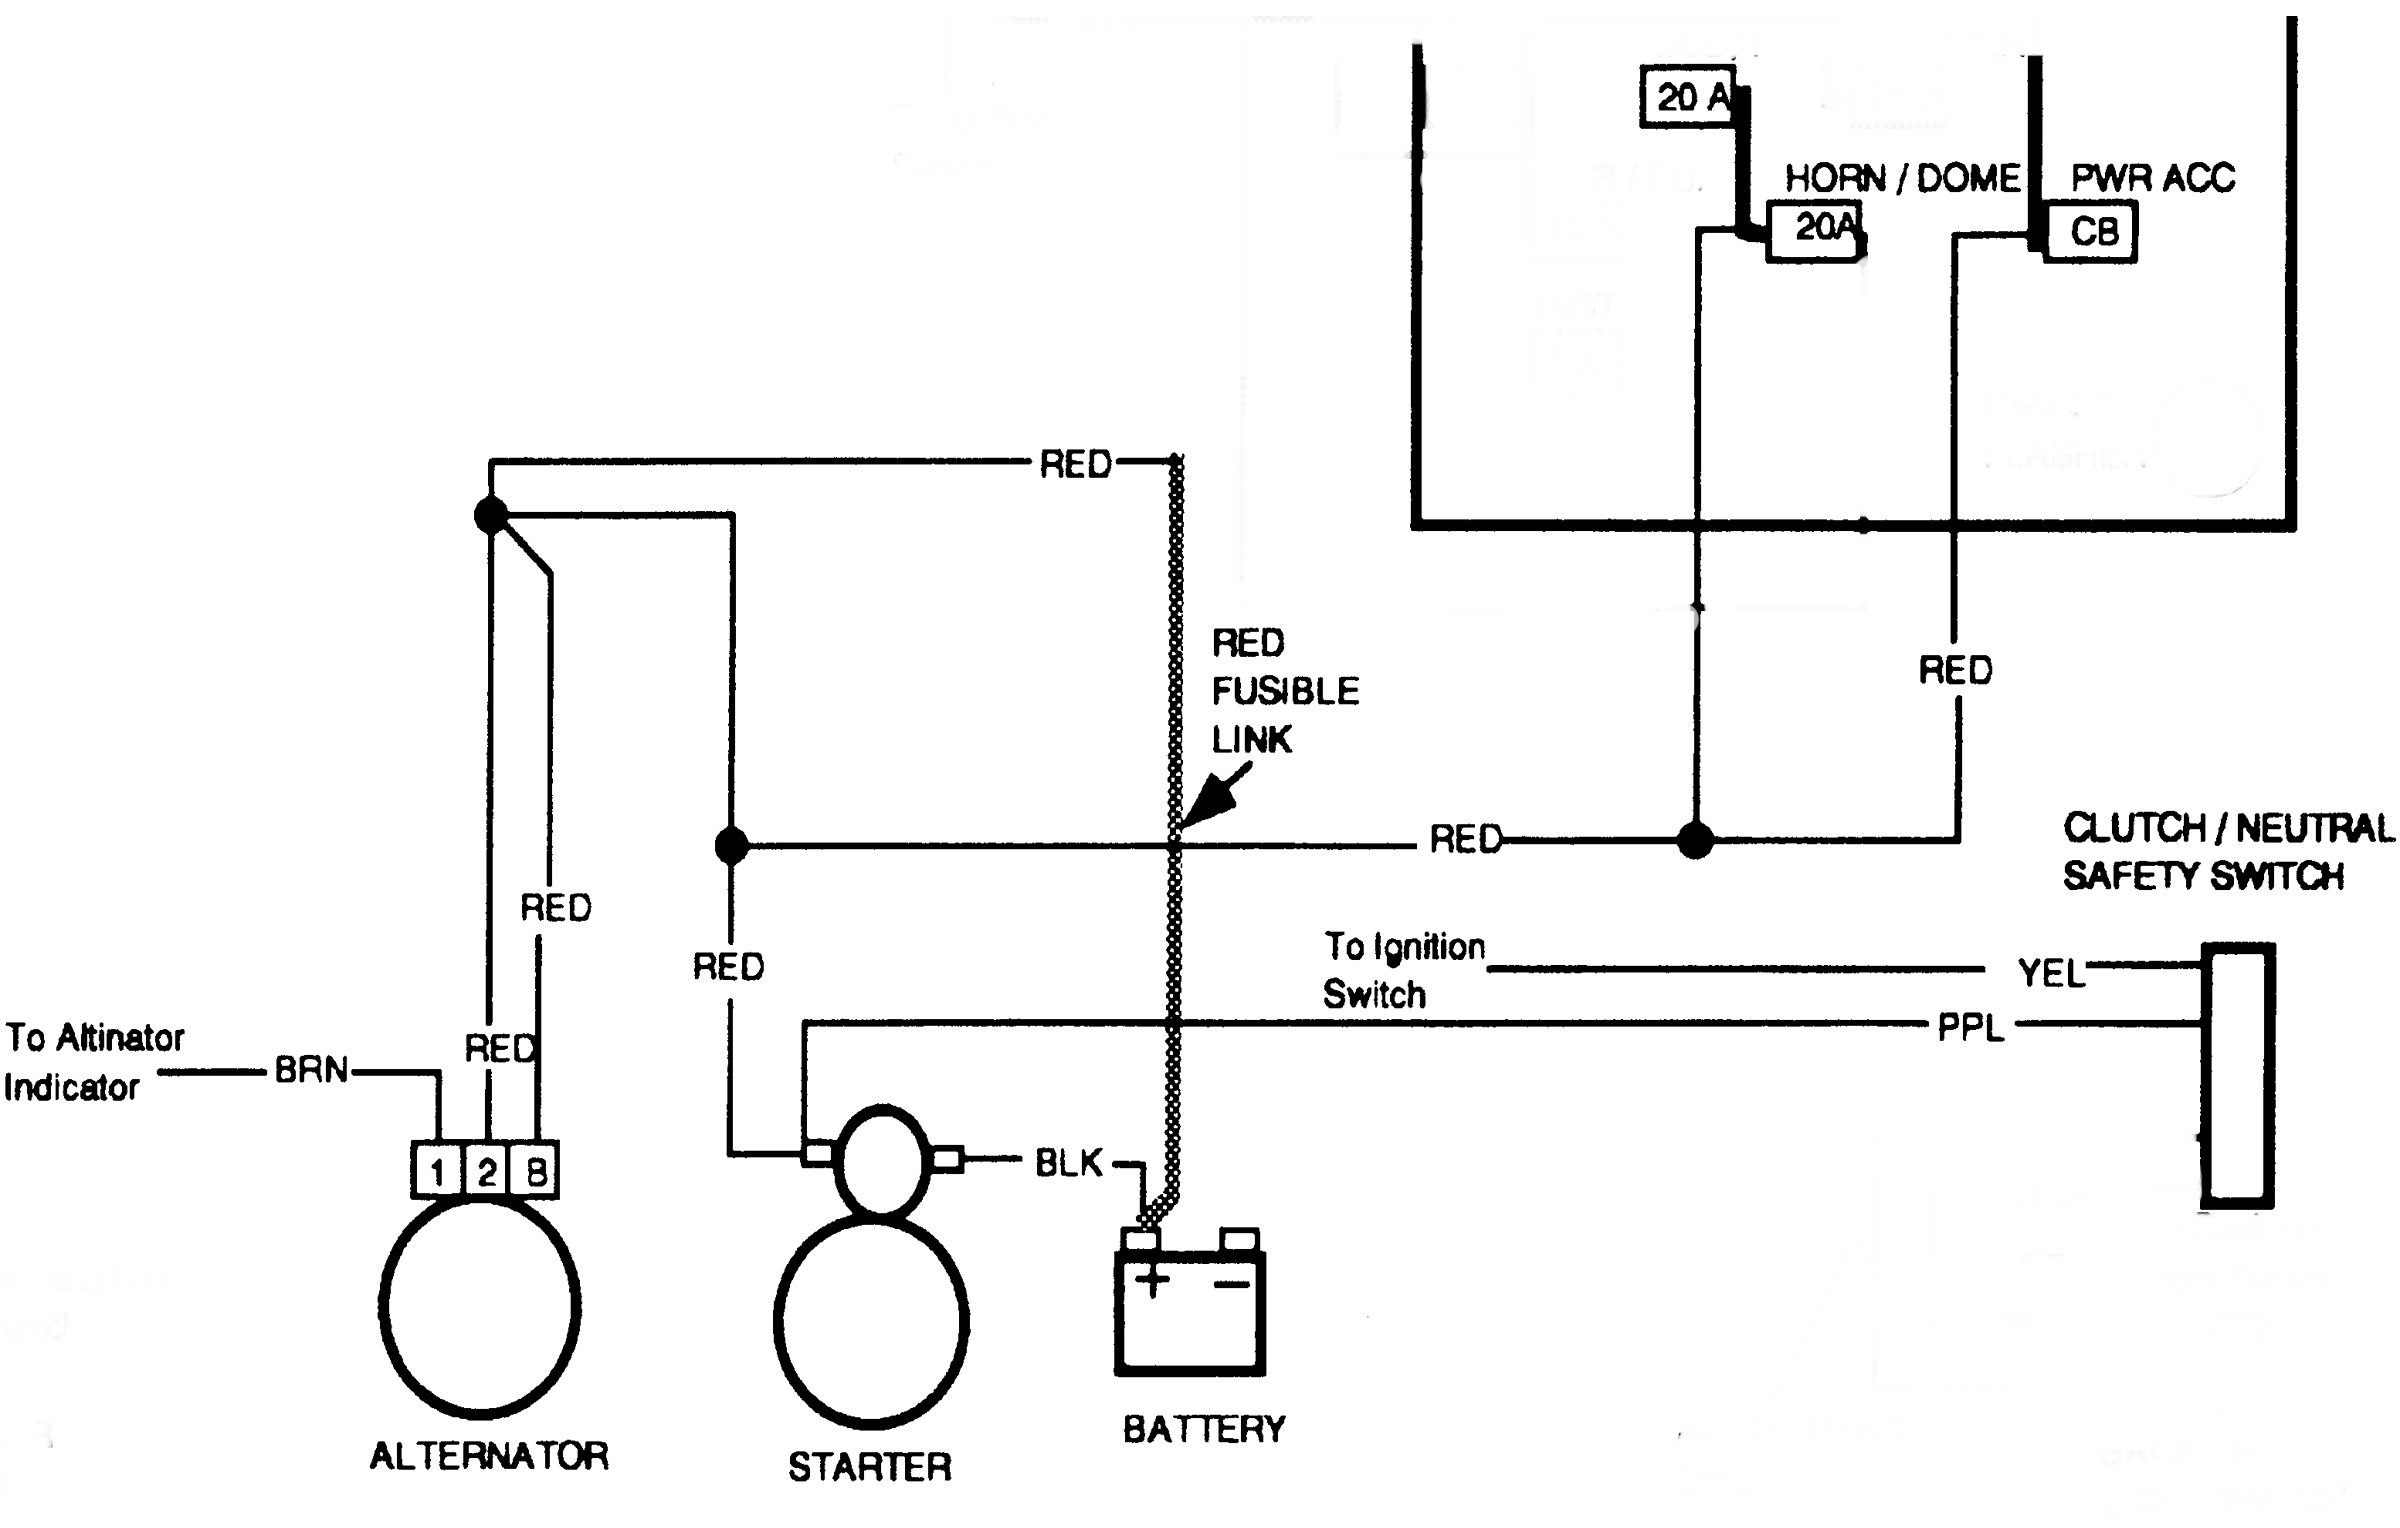 2000 Chevrolet 1500 Clutch Safety Switch Wiring Diagram from ww2.justanswer.com